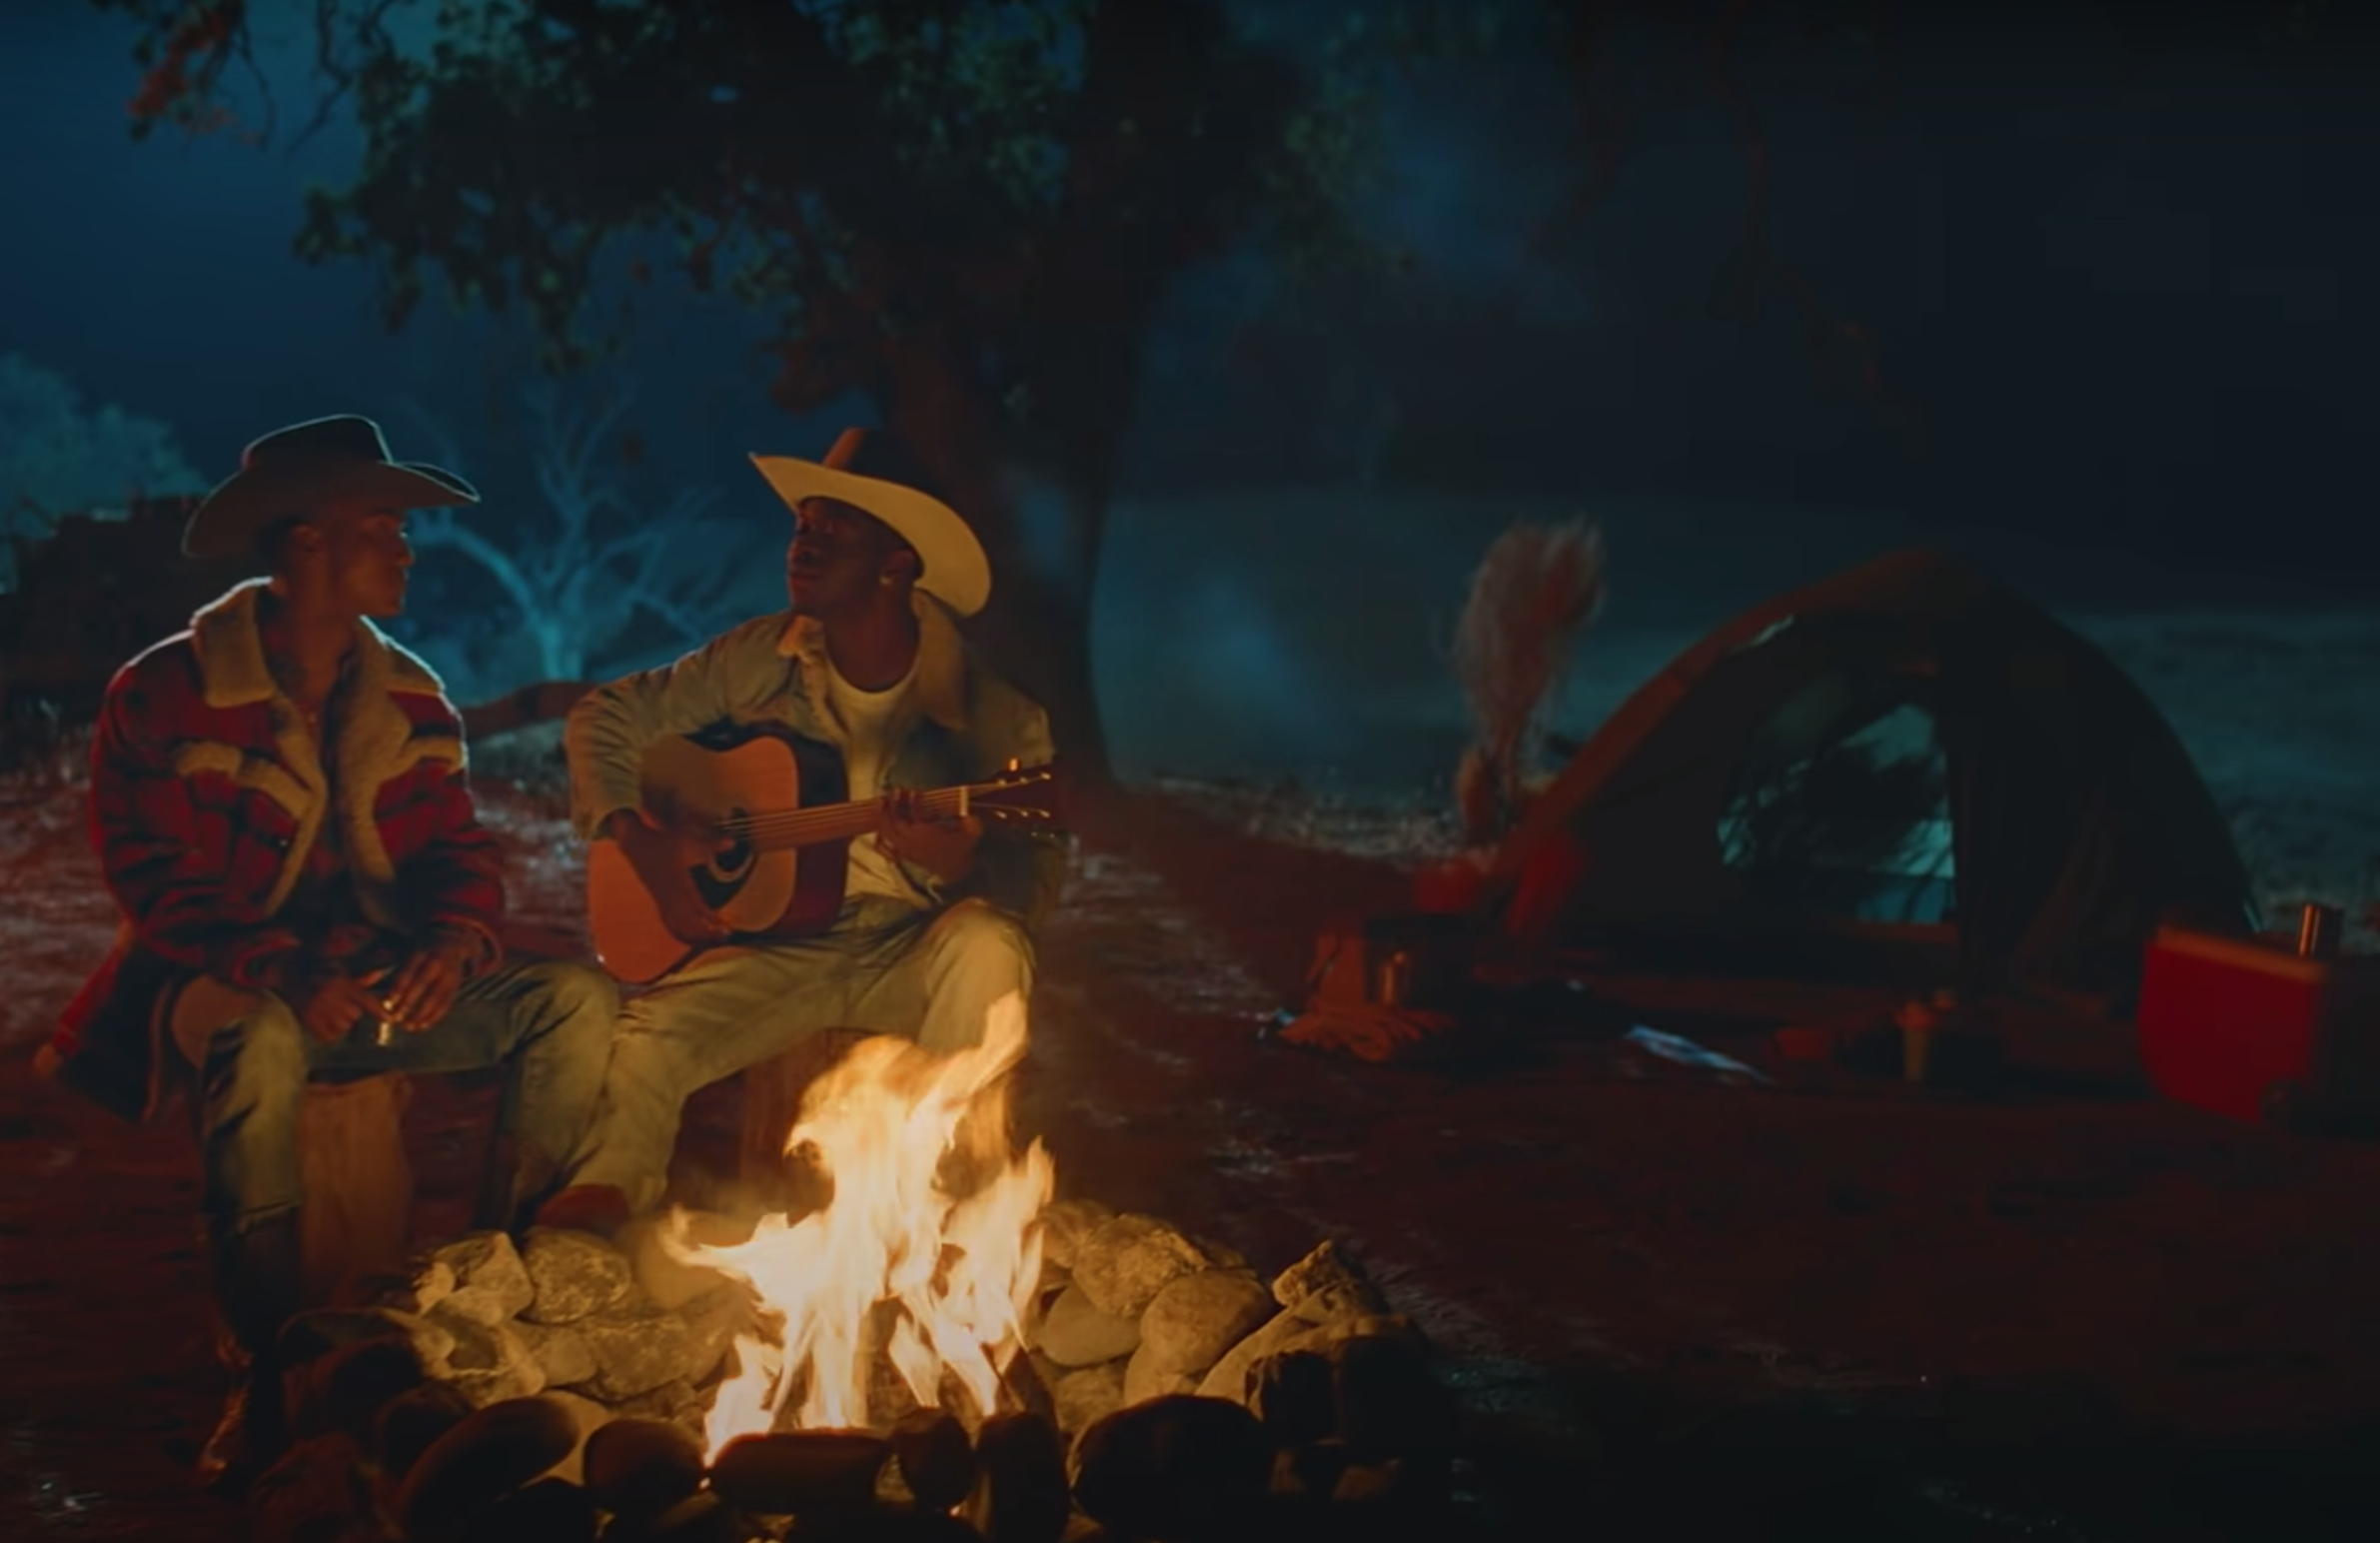 Nas and his lover sitting at a campfire.